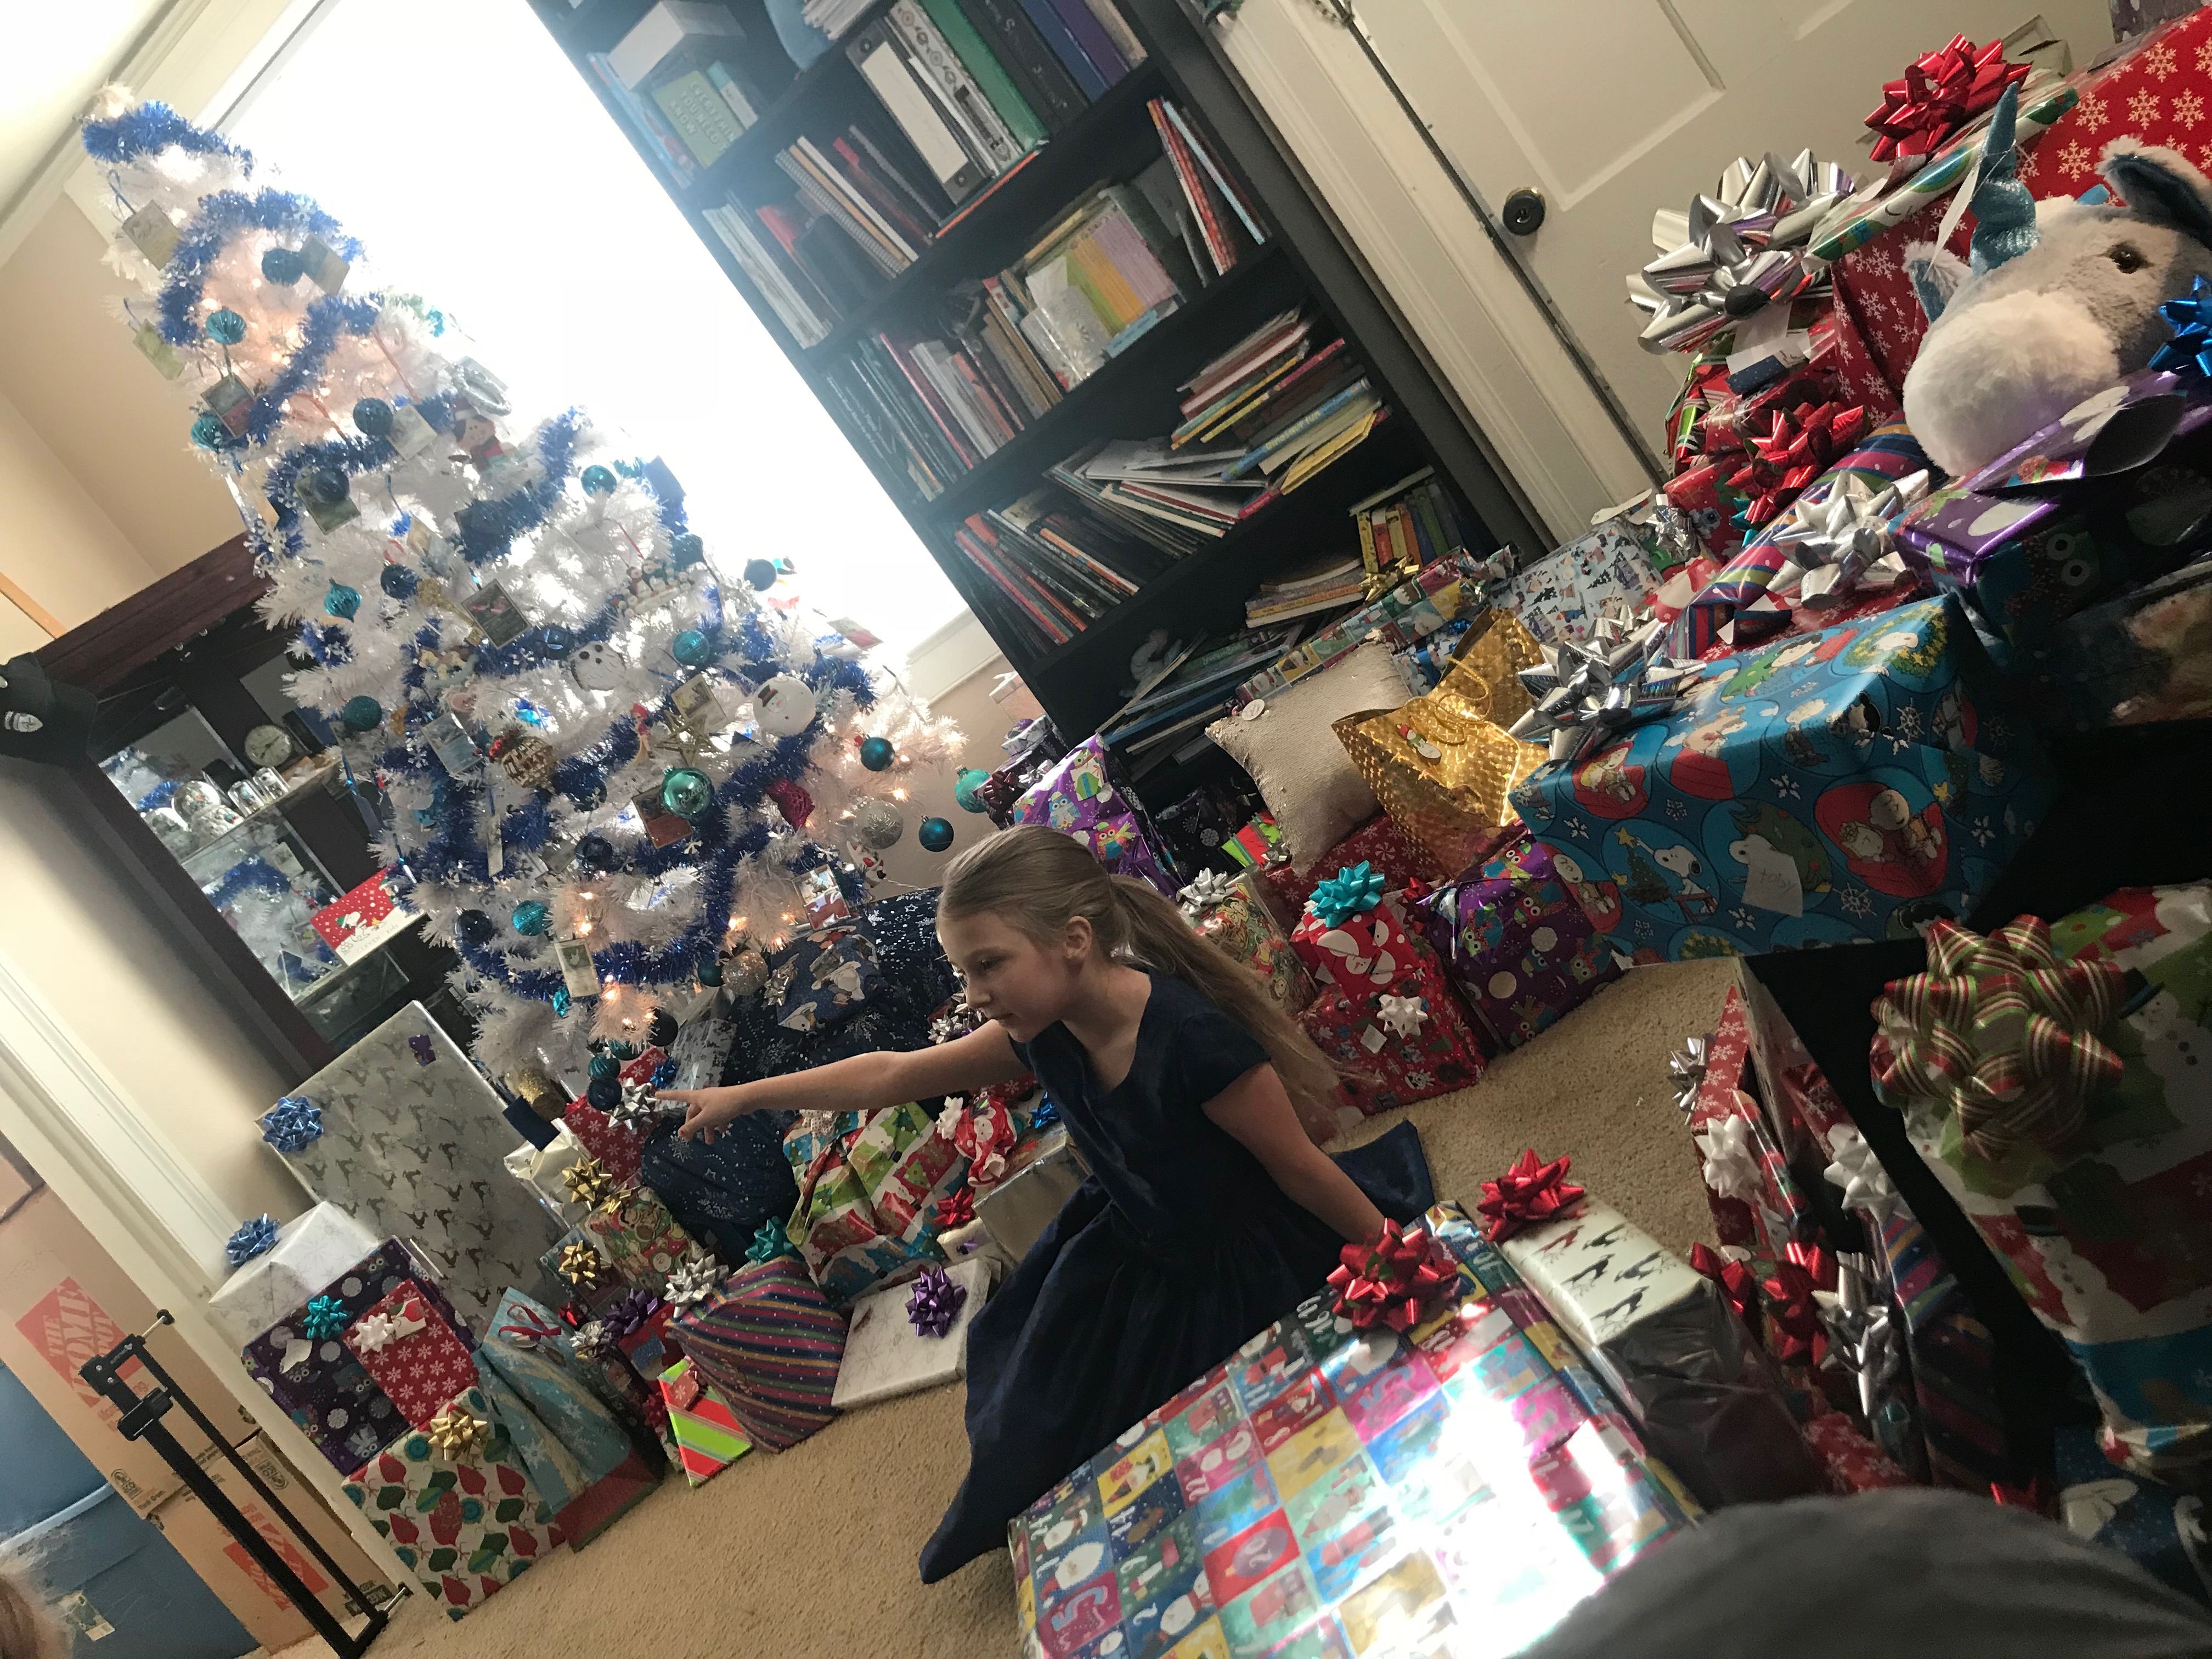 Christmas morning - Too many gifts? Science shows less toys is better for kids.